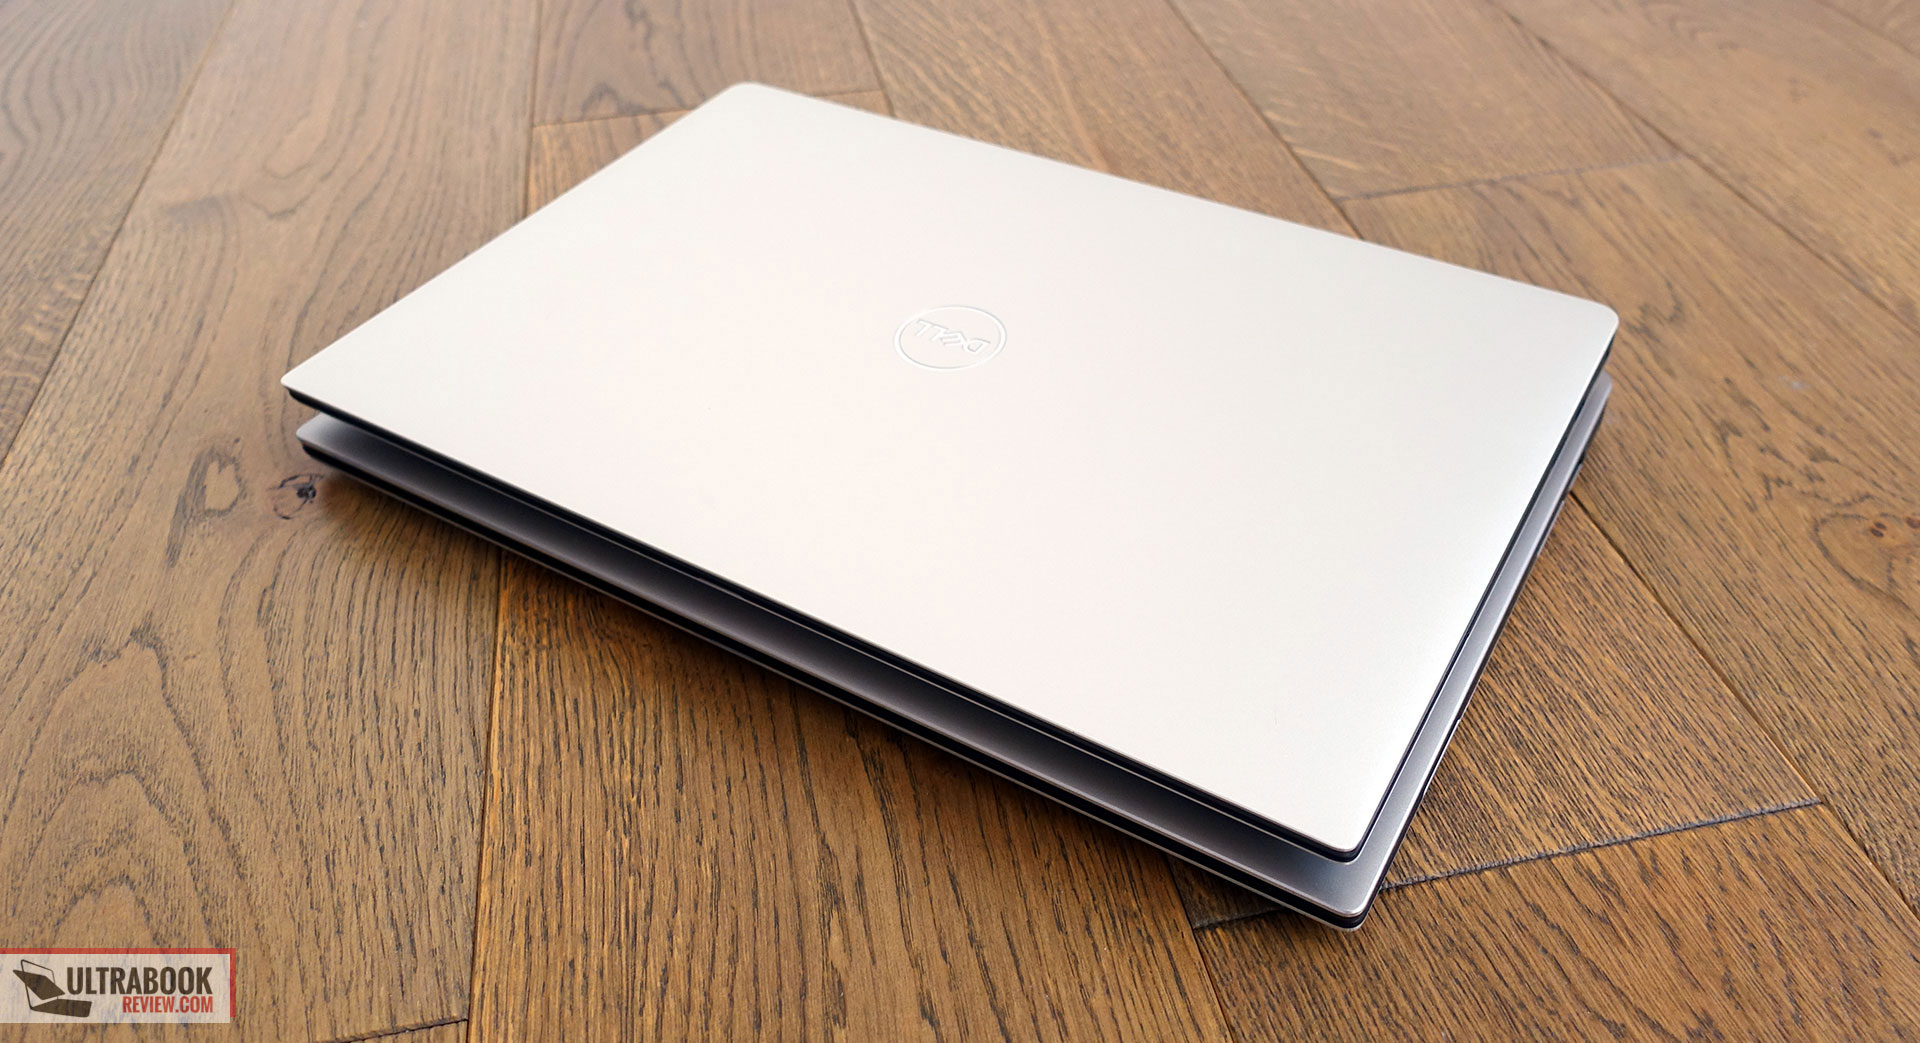 Dell XPS 13 9370 review (i7-8550U, FHD screen) - an upgrade